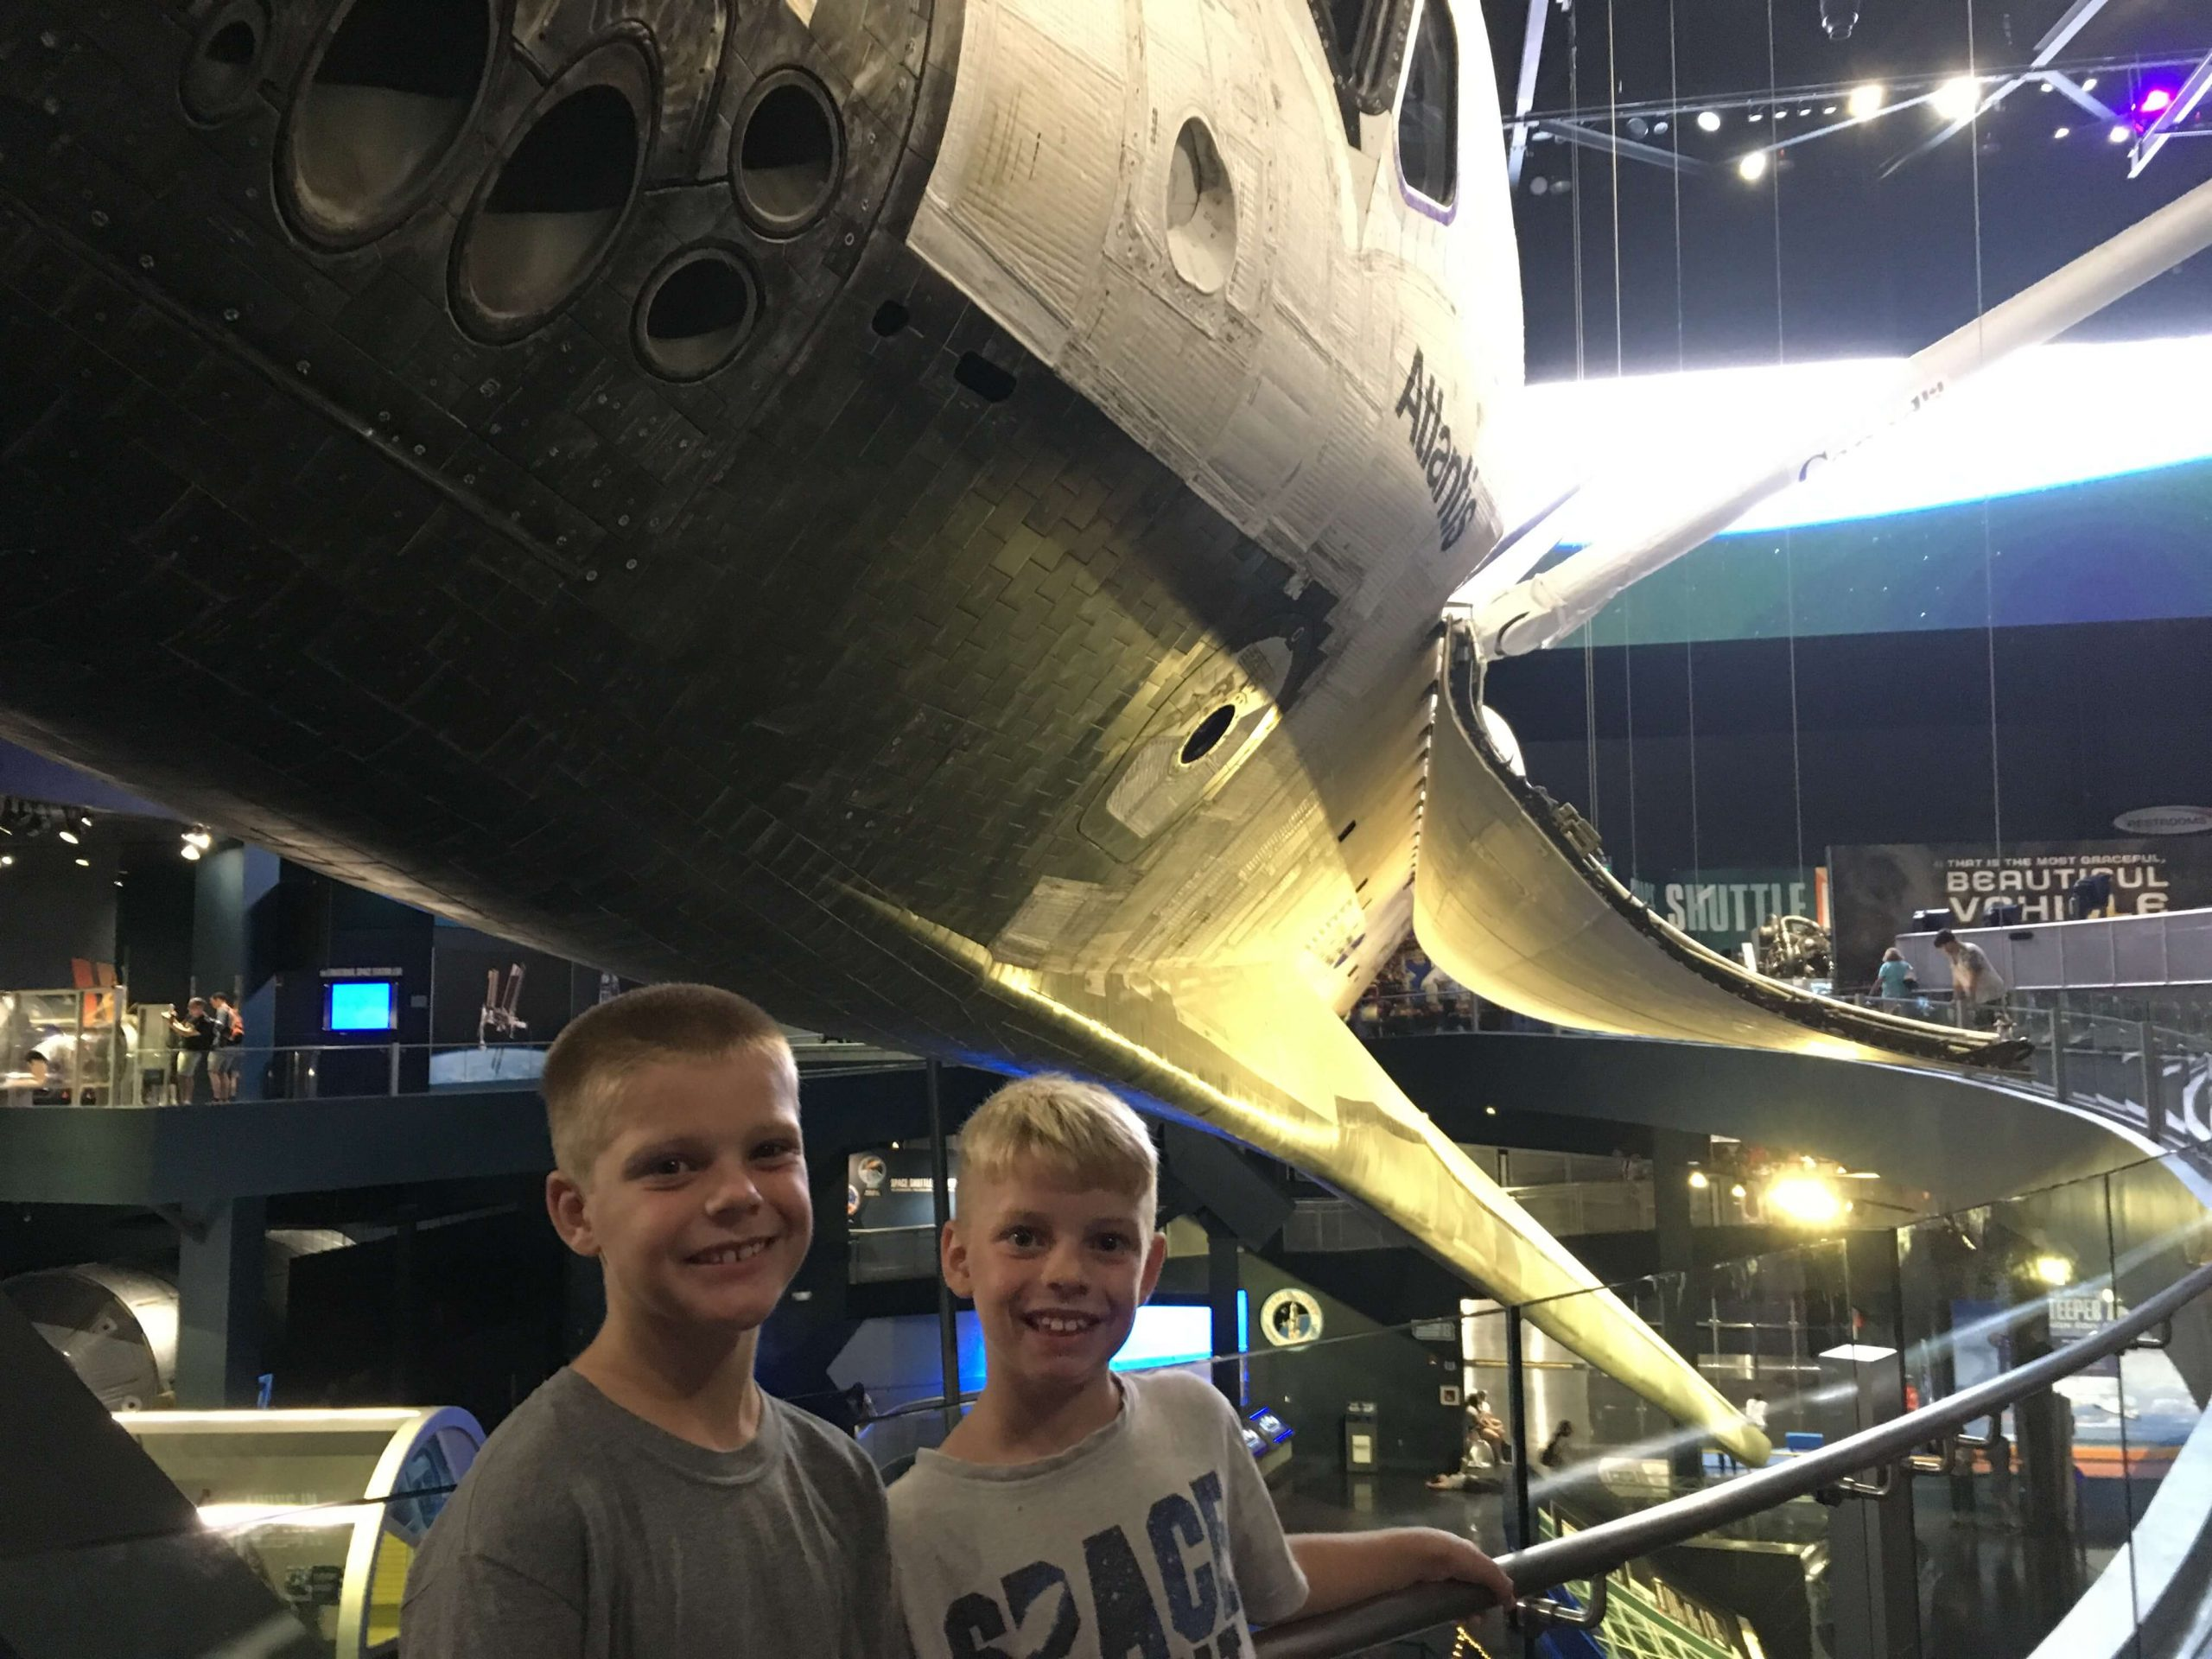 Miles and Gabe in front of Shuttle Atlantis